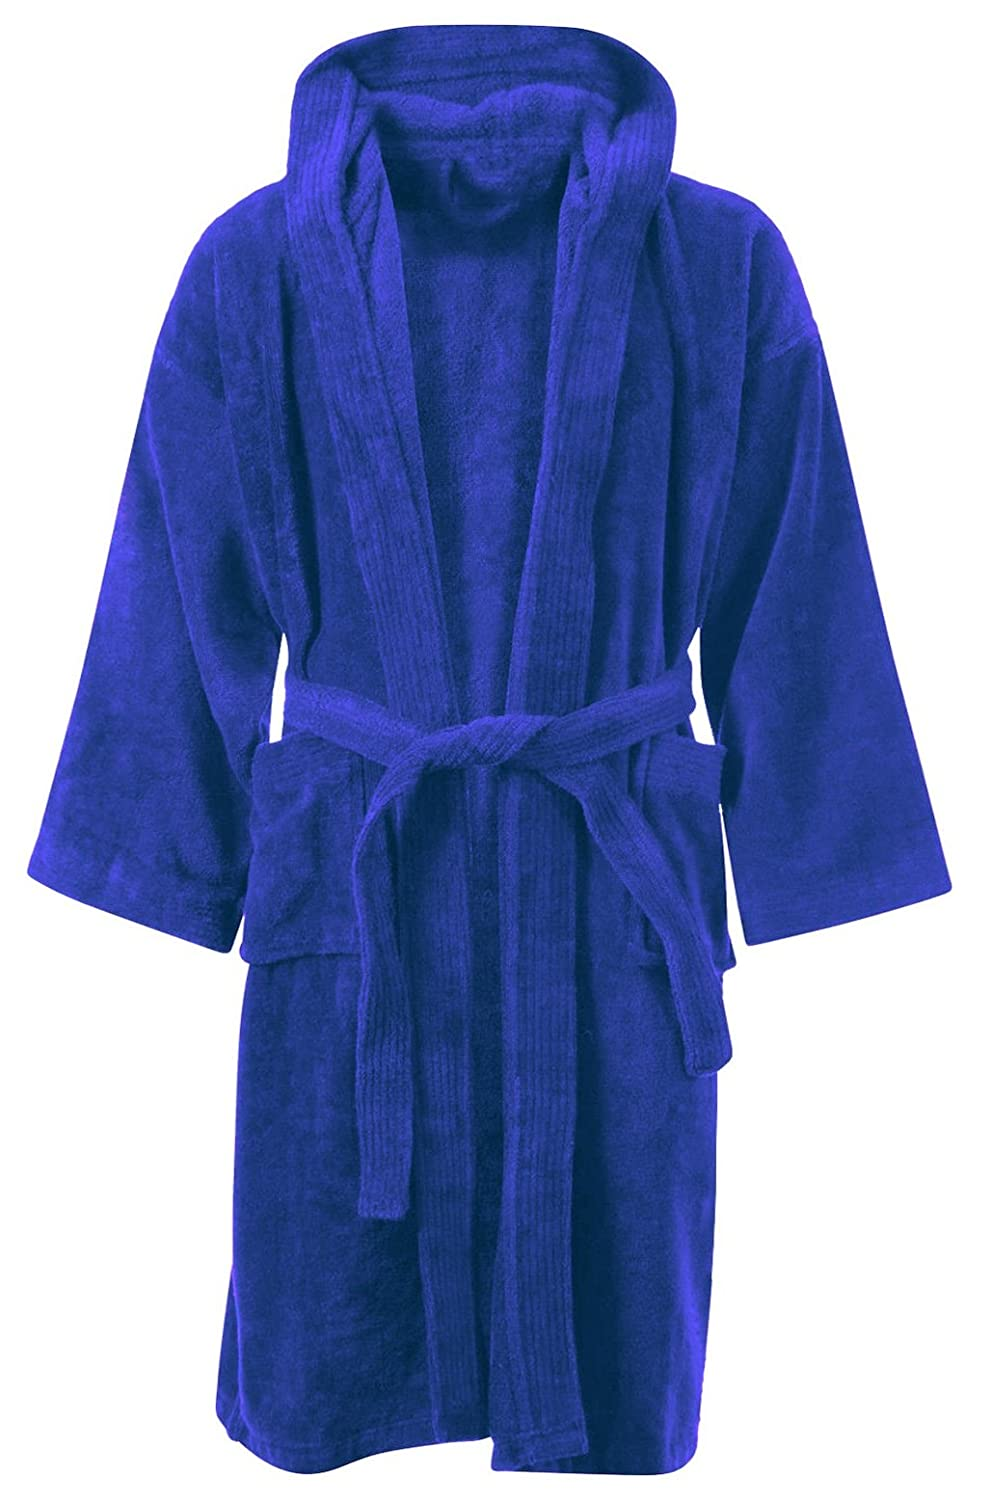 Amazon.com   Kids Boys Girls Bathrobe 100% Egyptian Cotton Luxury Velour  Towelling Hooded Dressing Gown Soft FINE Comfortable Nightwear Terry Towel  Bath ... 13a89a4c8